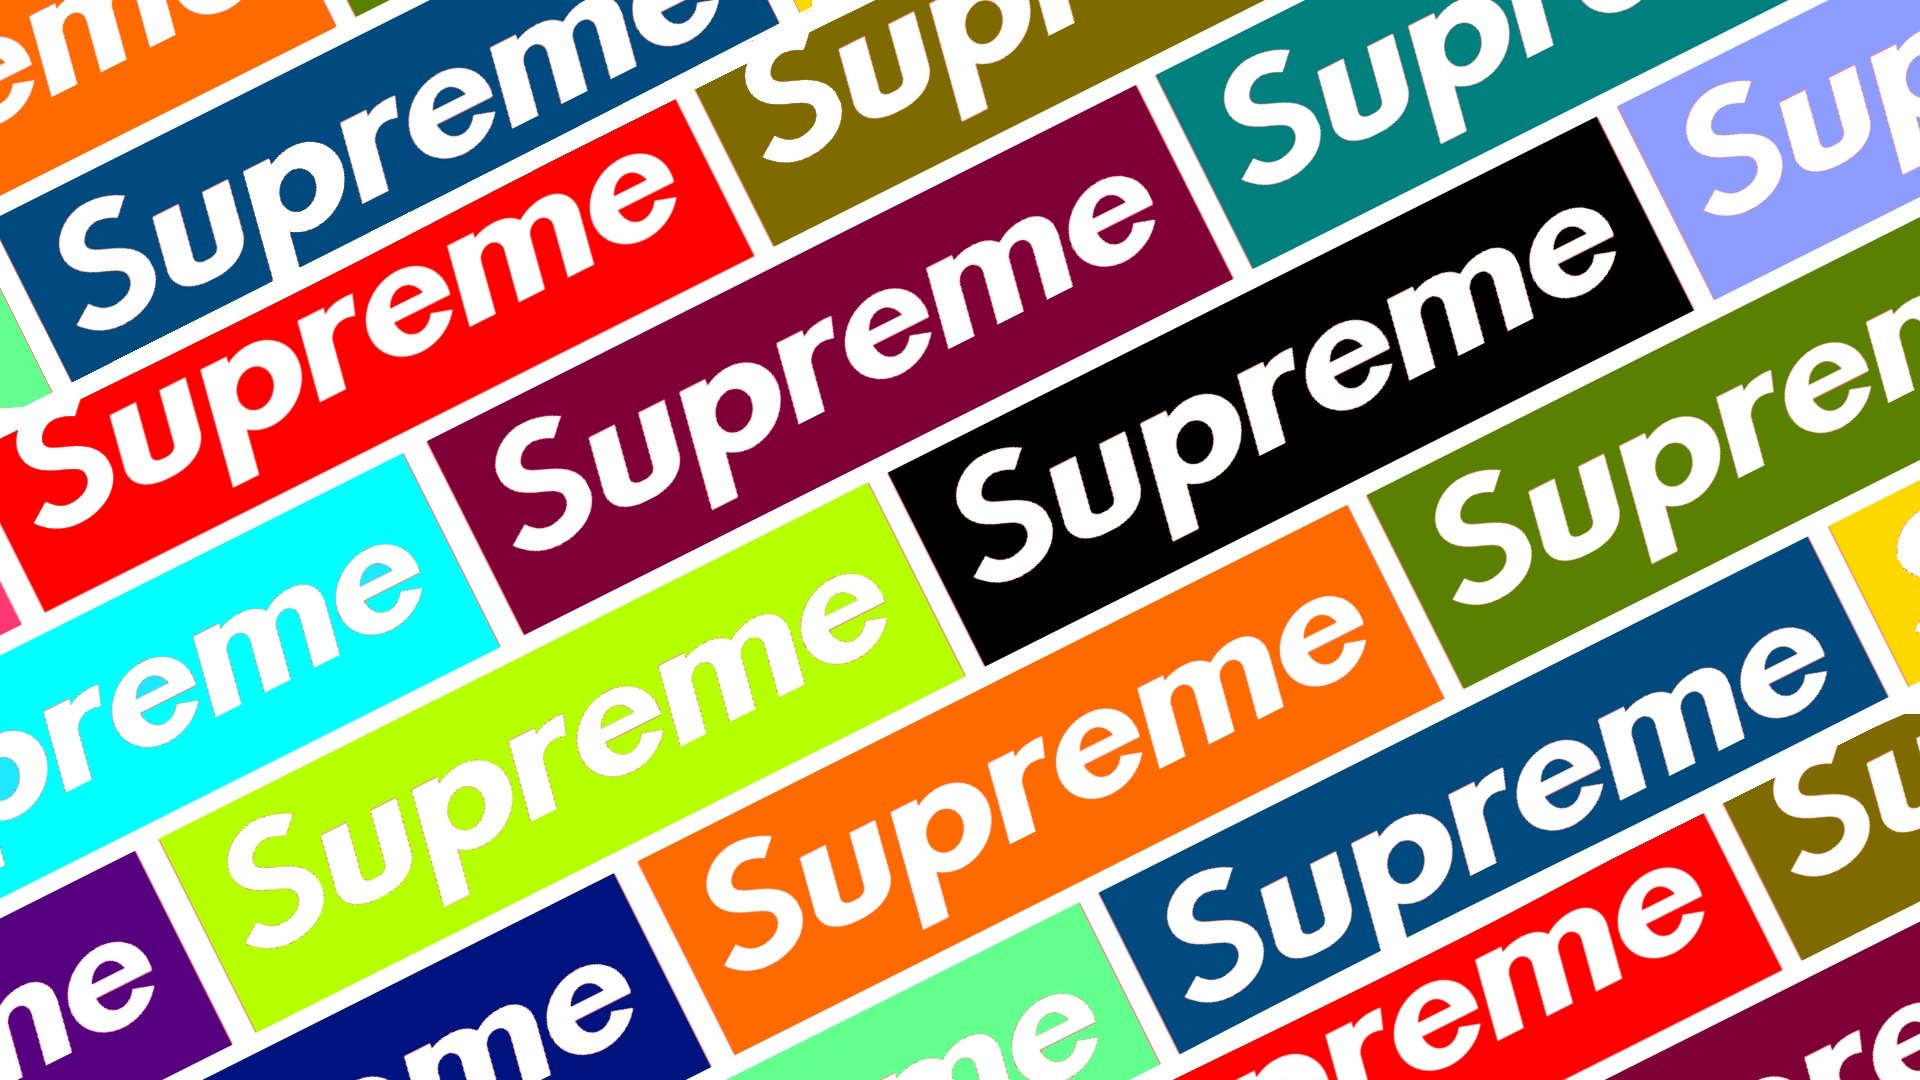 Supreme Wallpaper on bape cartoon wallpapers 1080x1080